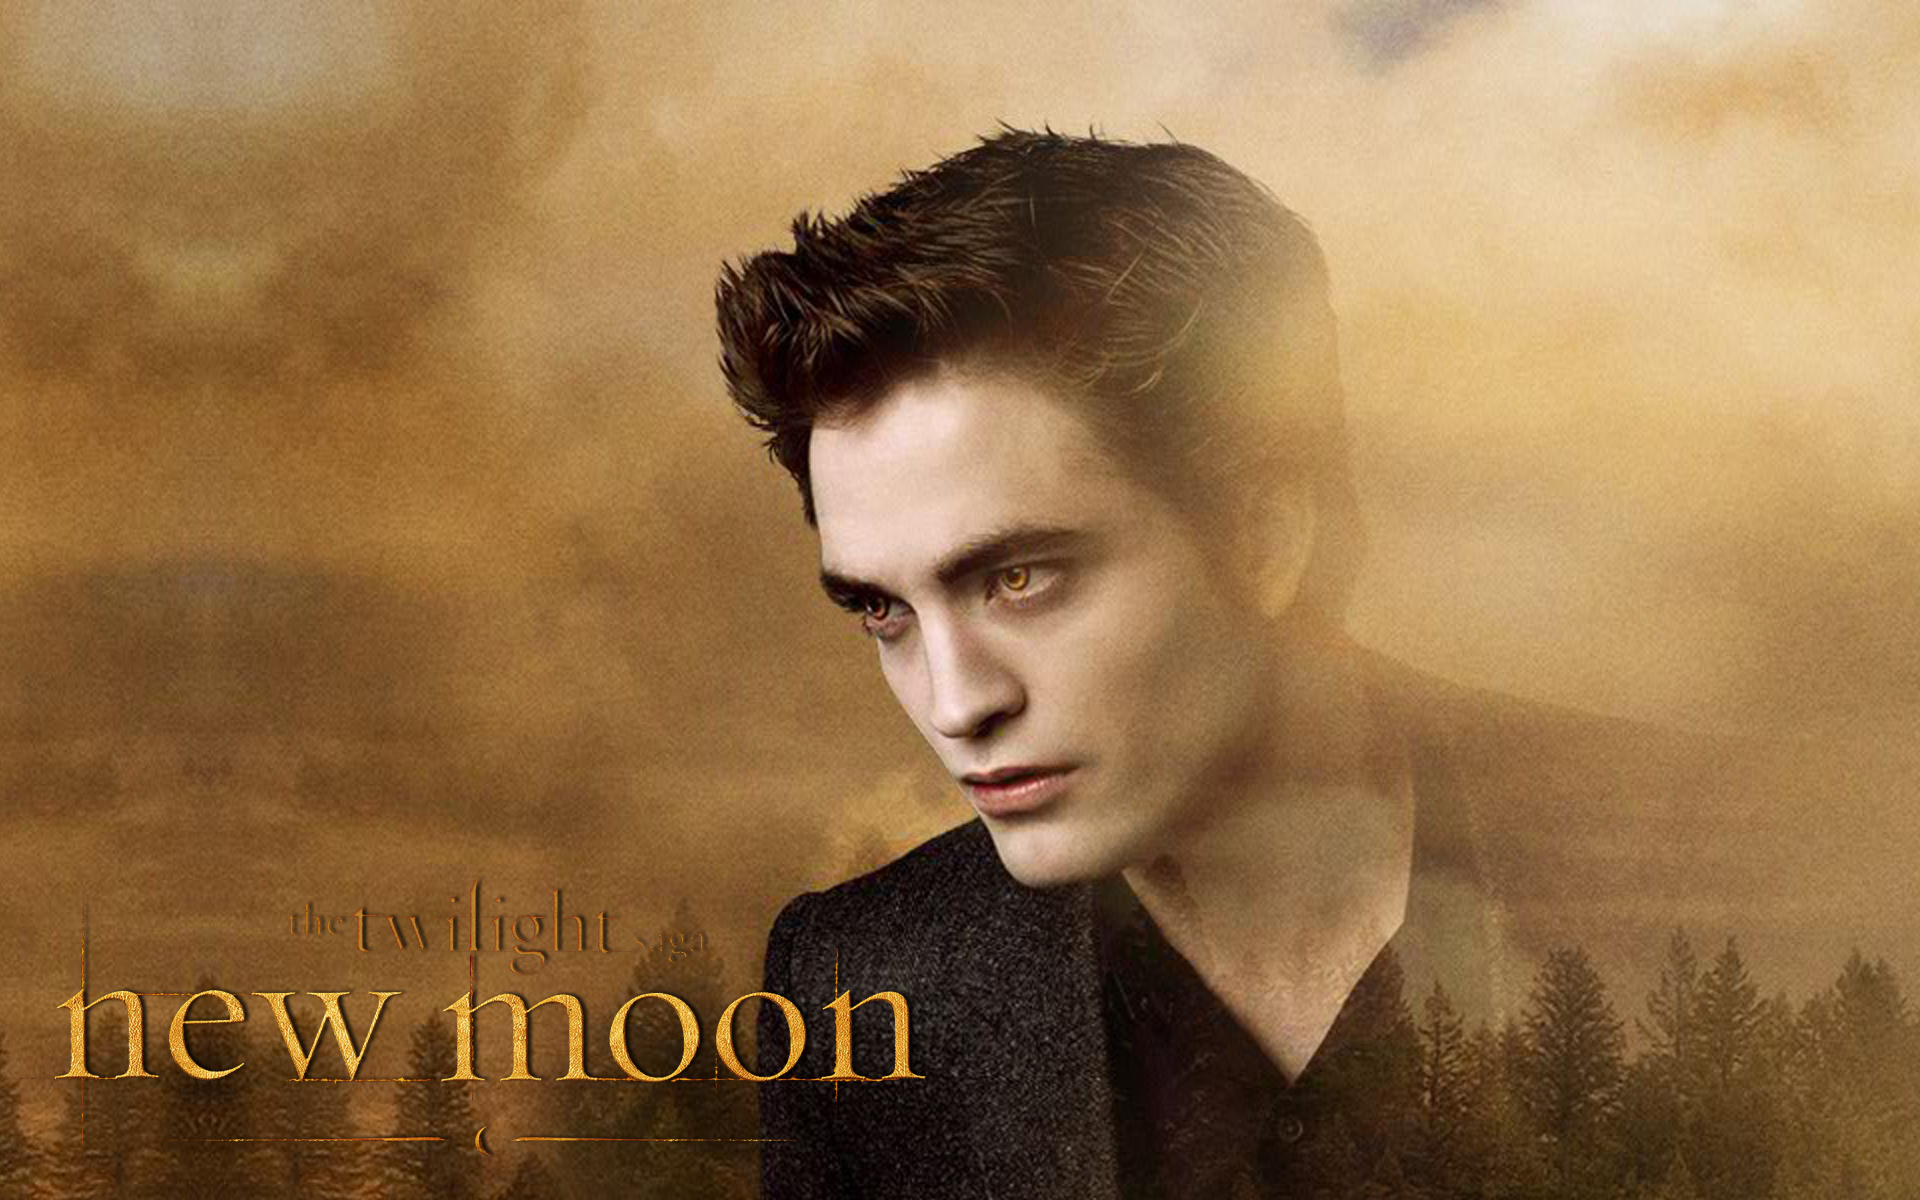 Edward cullen twilighters wallpaper 31003299 fanpop Twilight edward photos